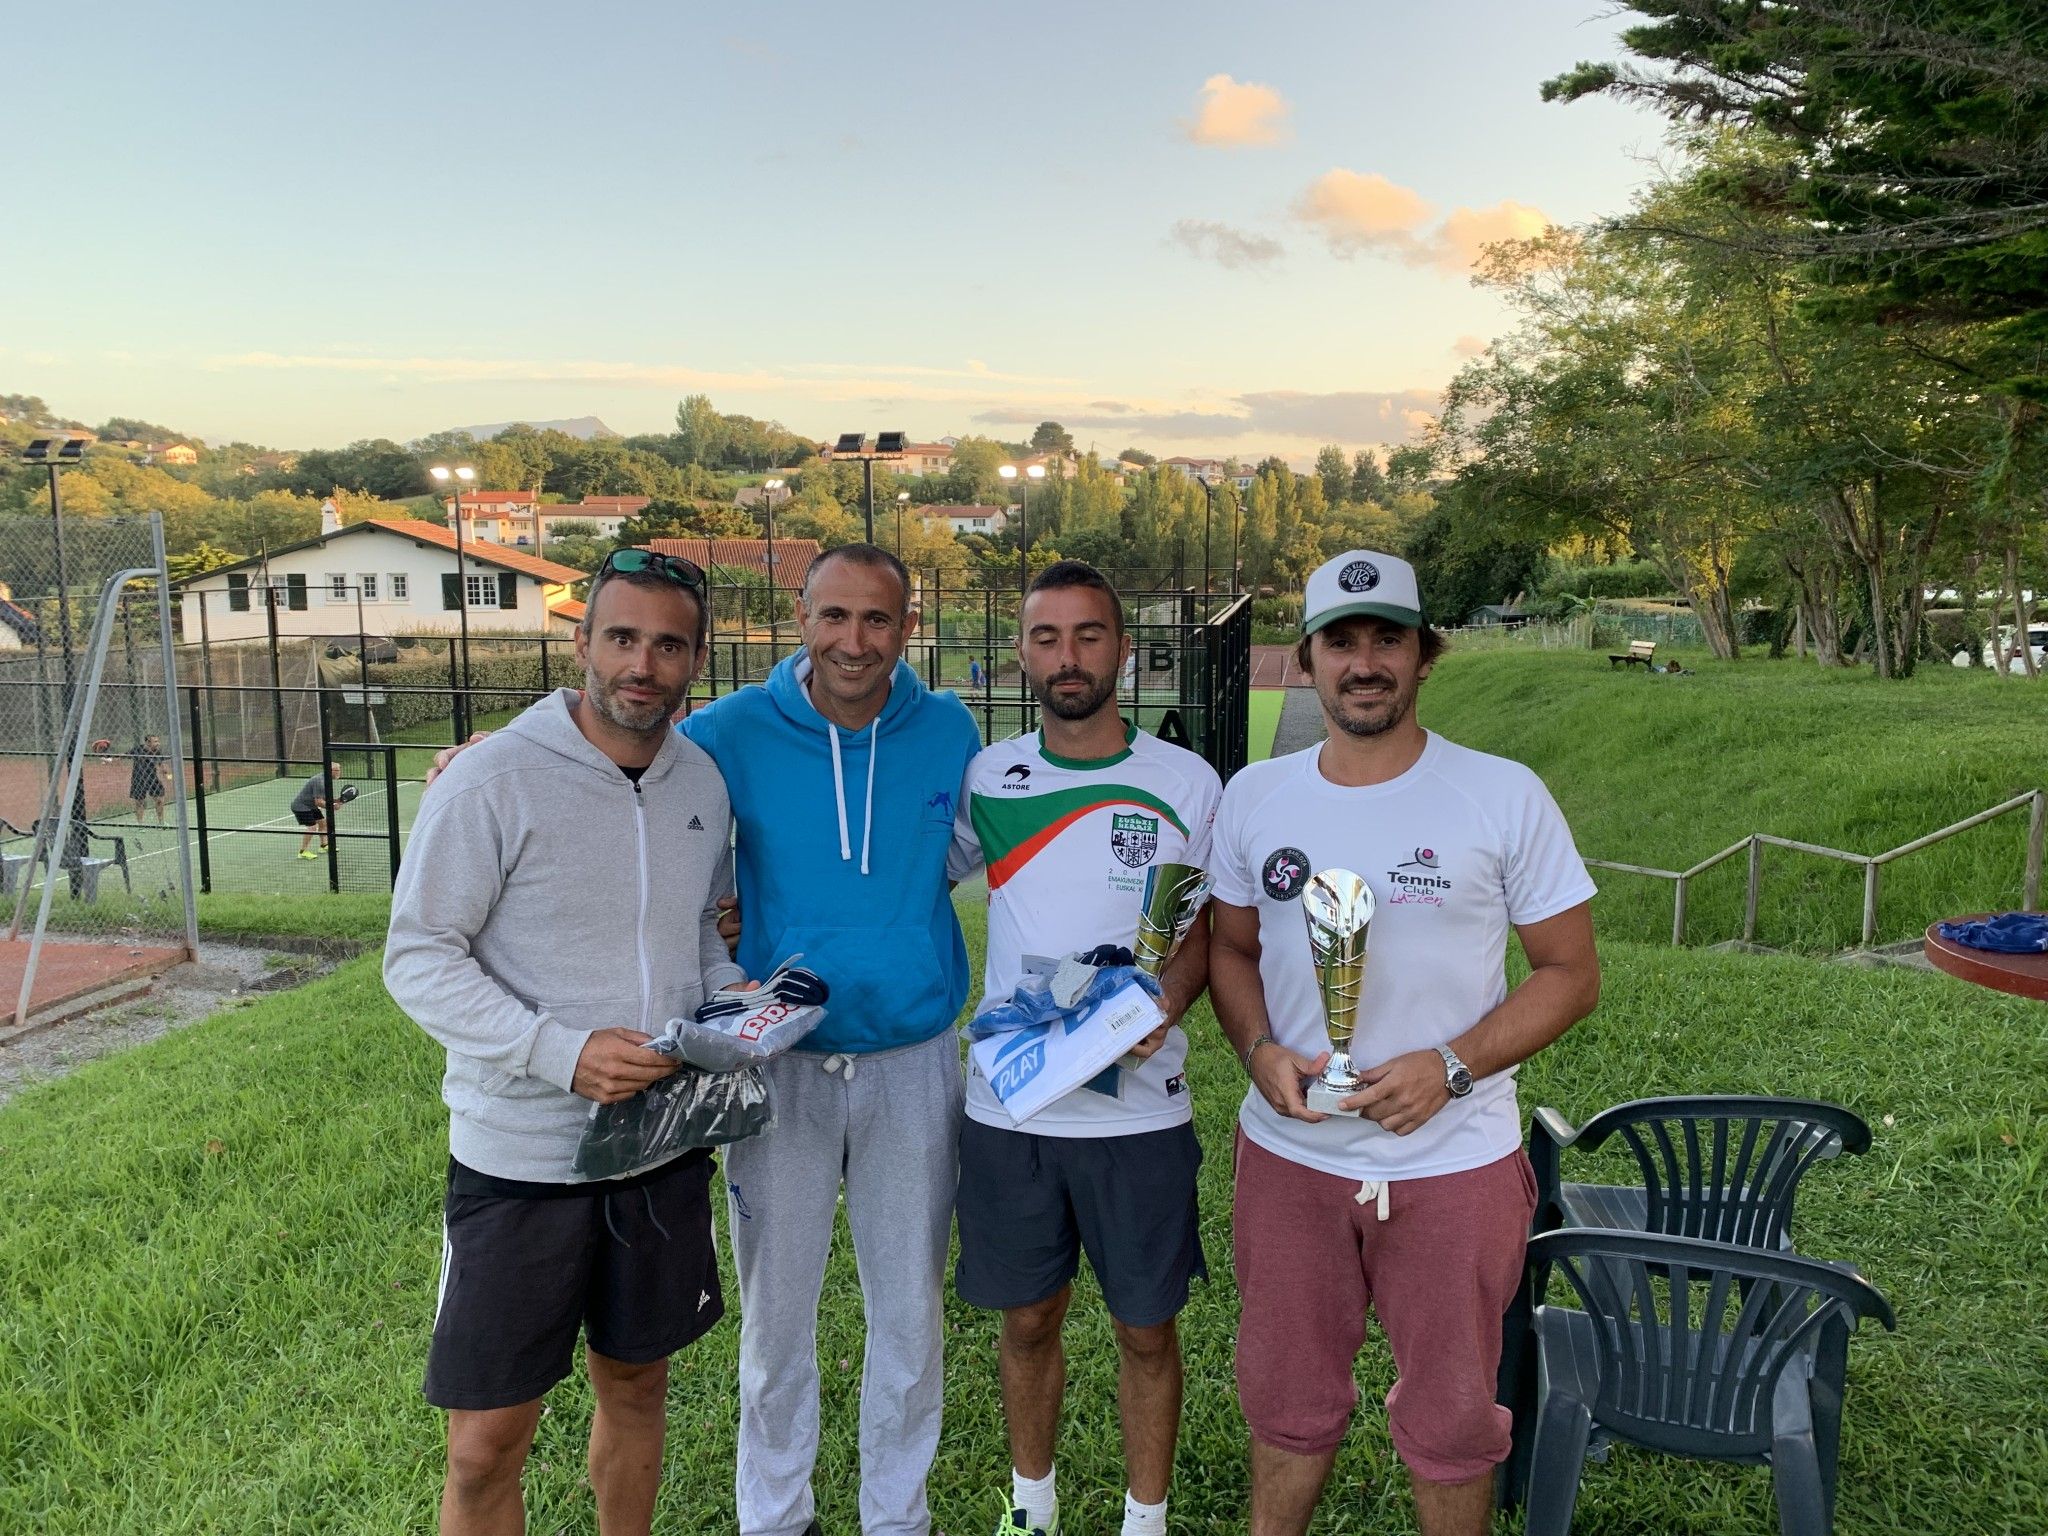 Joli week-end padel au Tc Guéthary